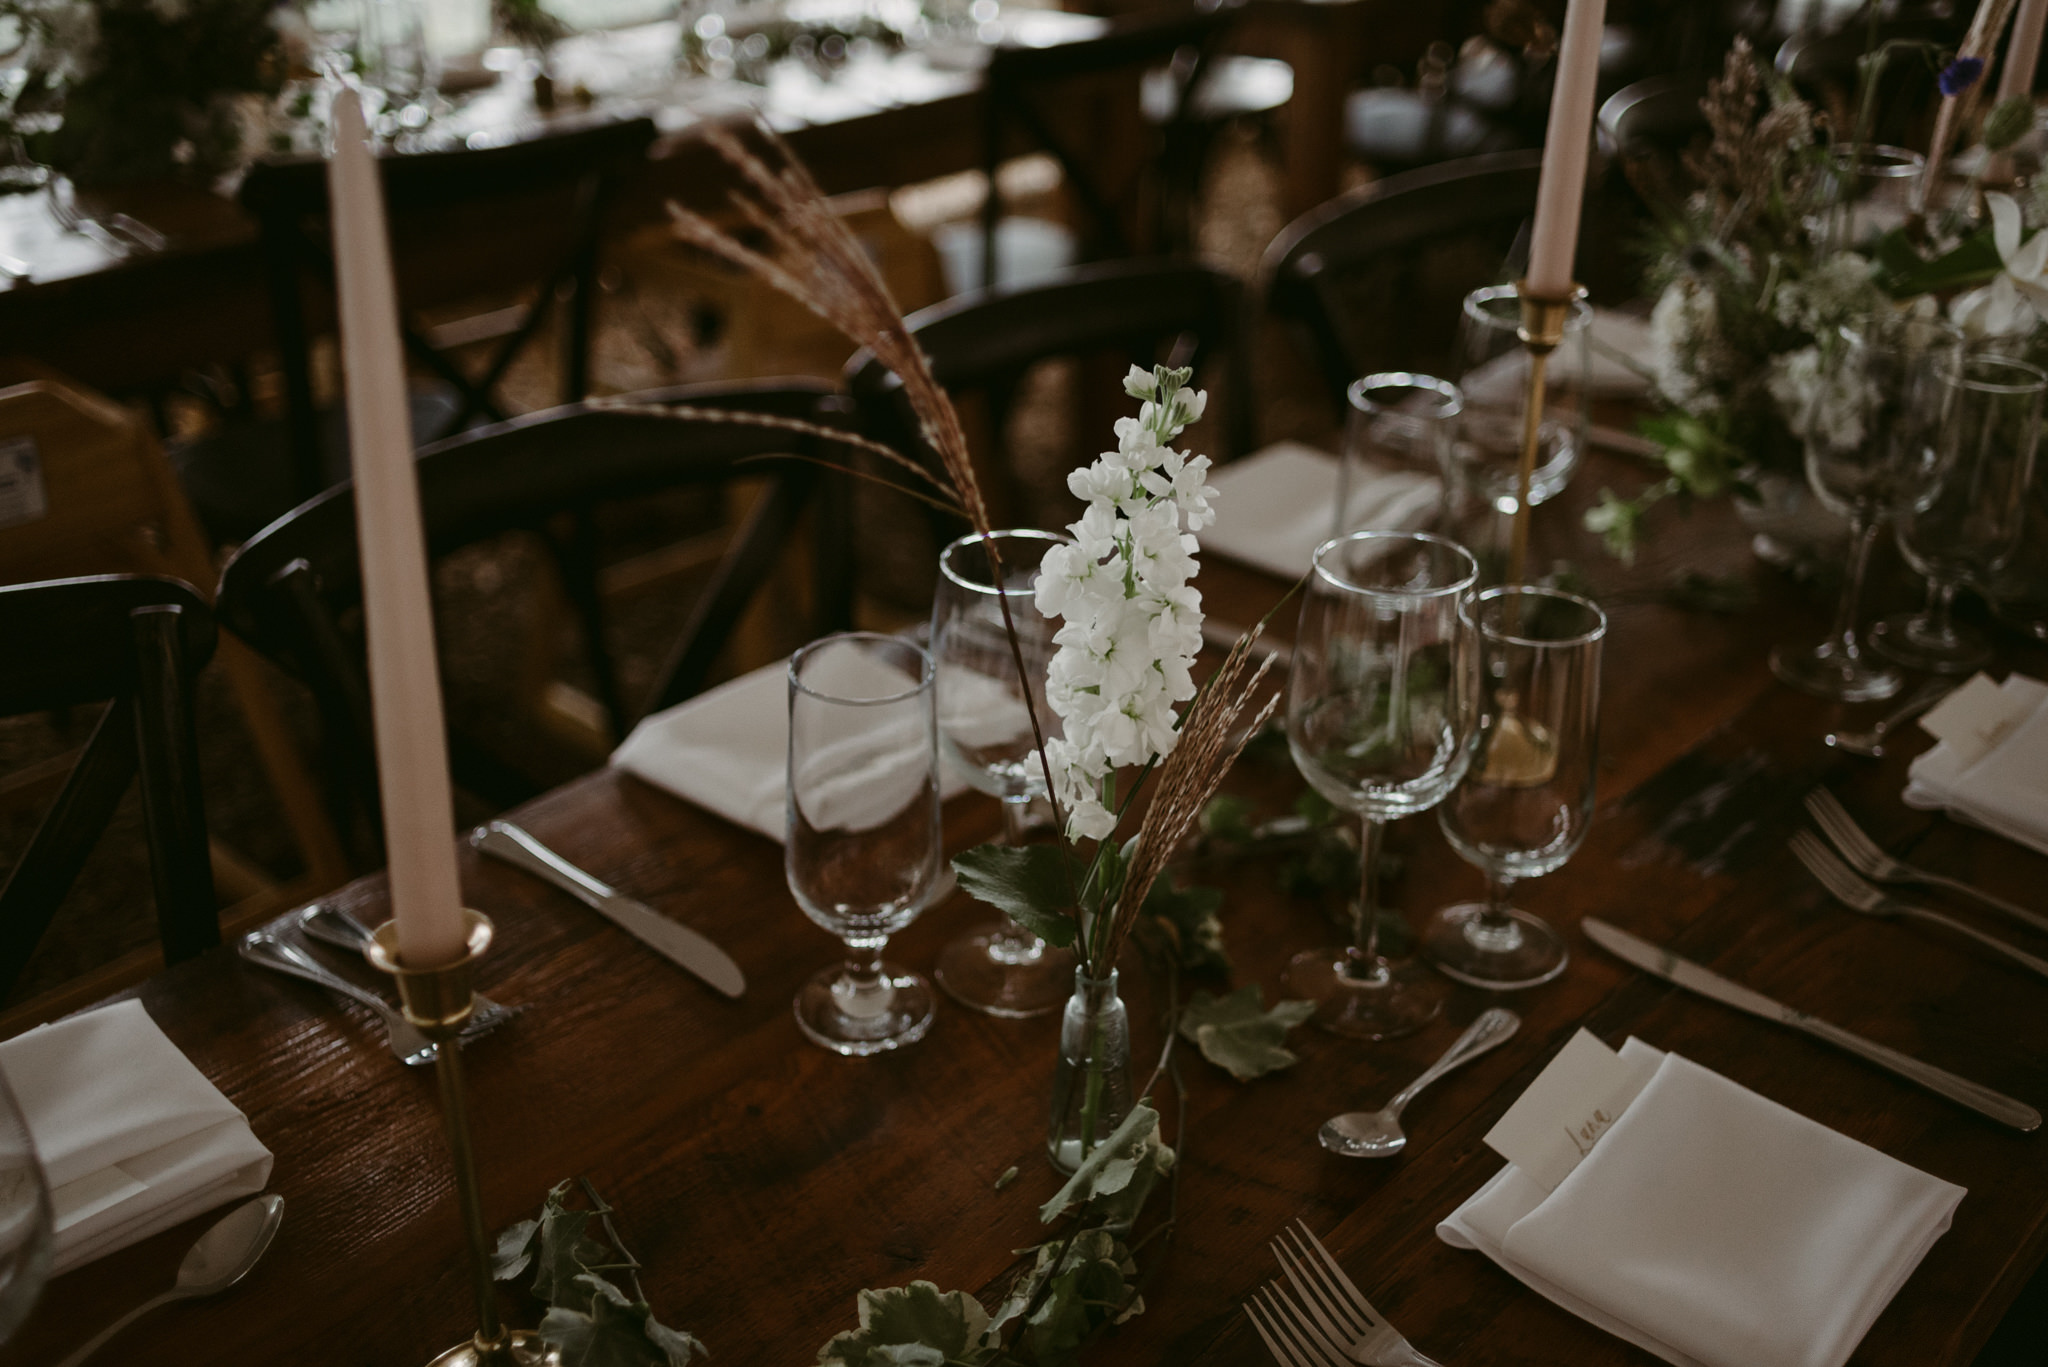 stems of wheat and vines for wedding table setup